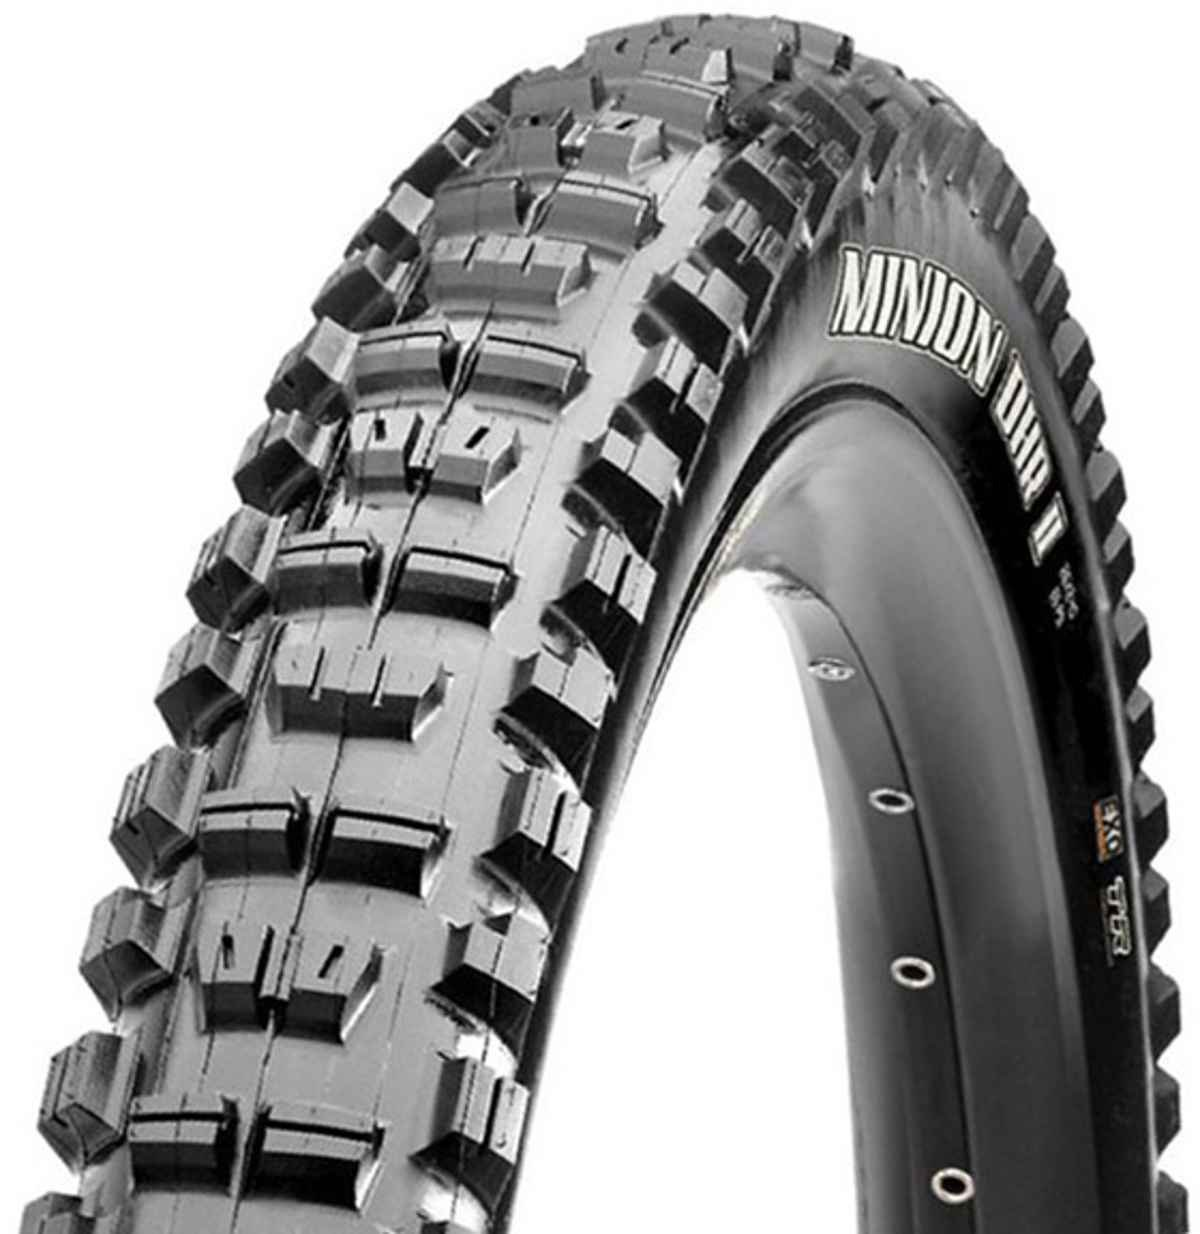 Maxxis Minion DHR IIタイヤ27.5 X 2.6 60tpi Dual Compound EXO Casing Tubeless B0756N98P8